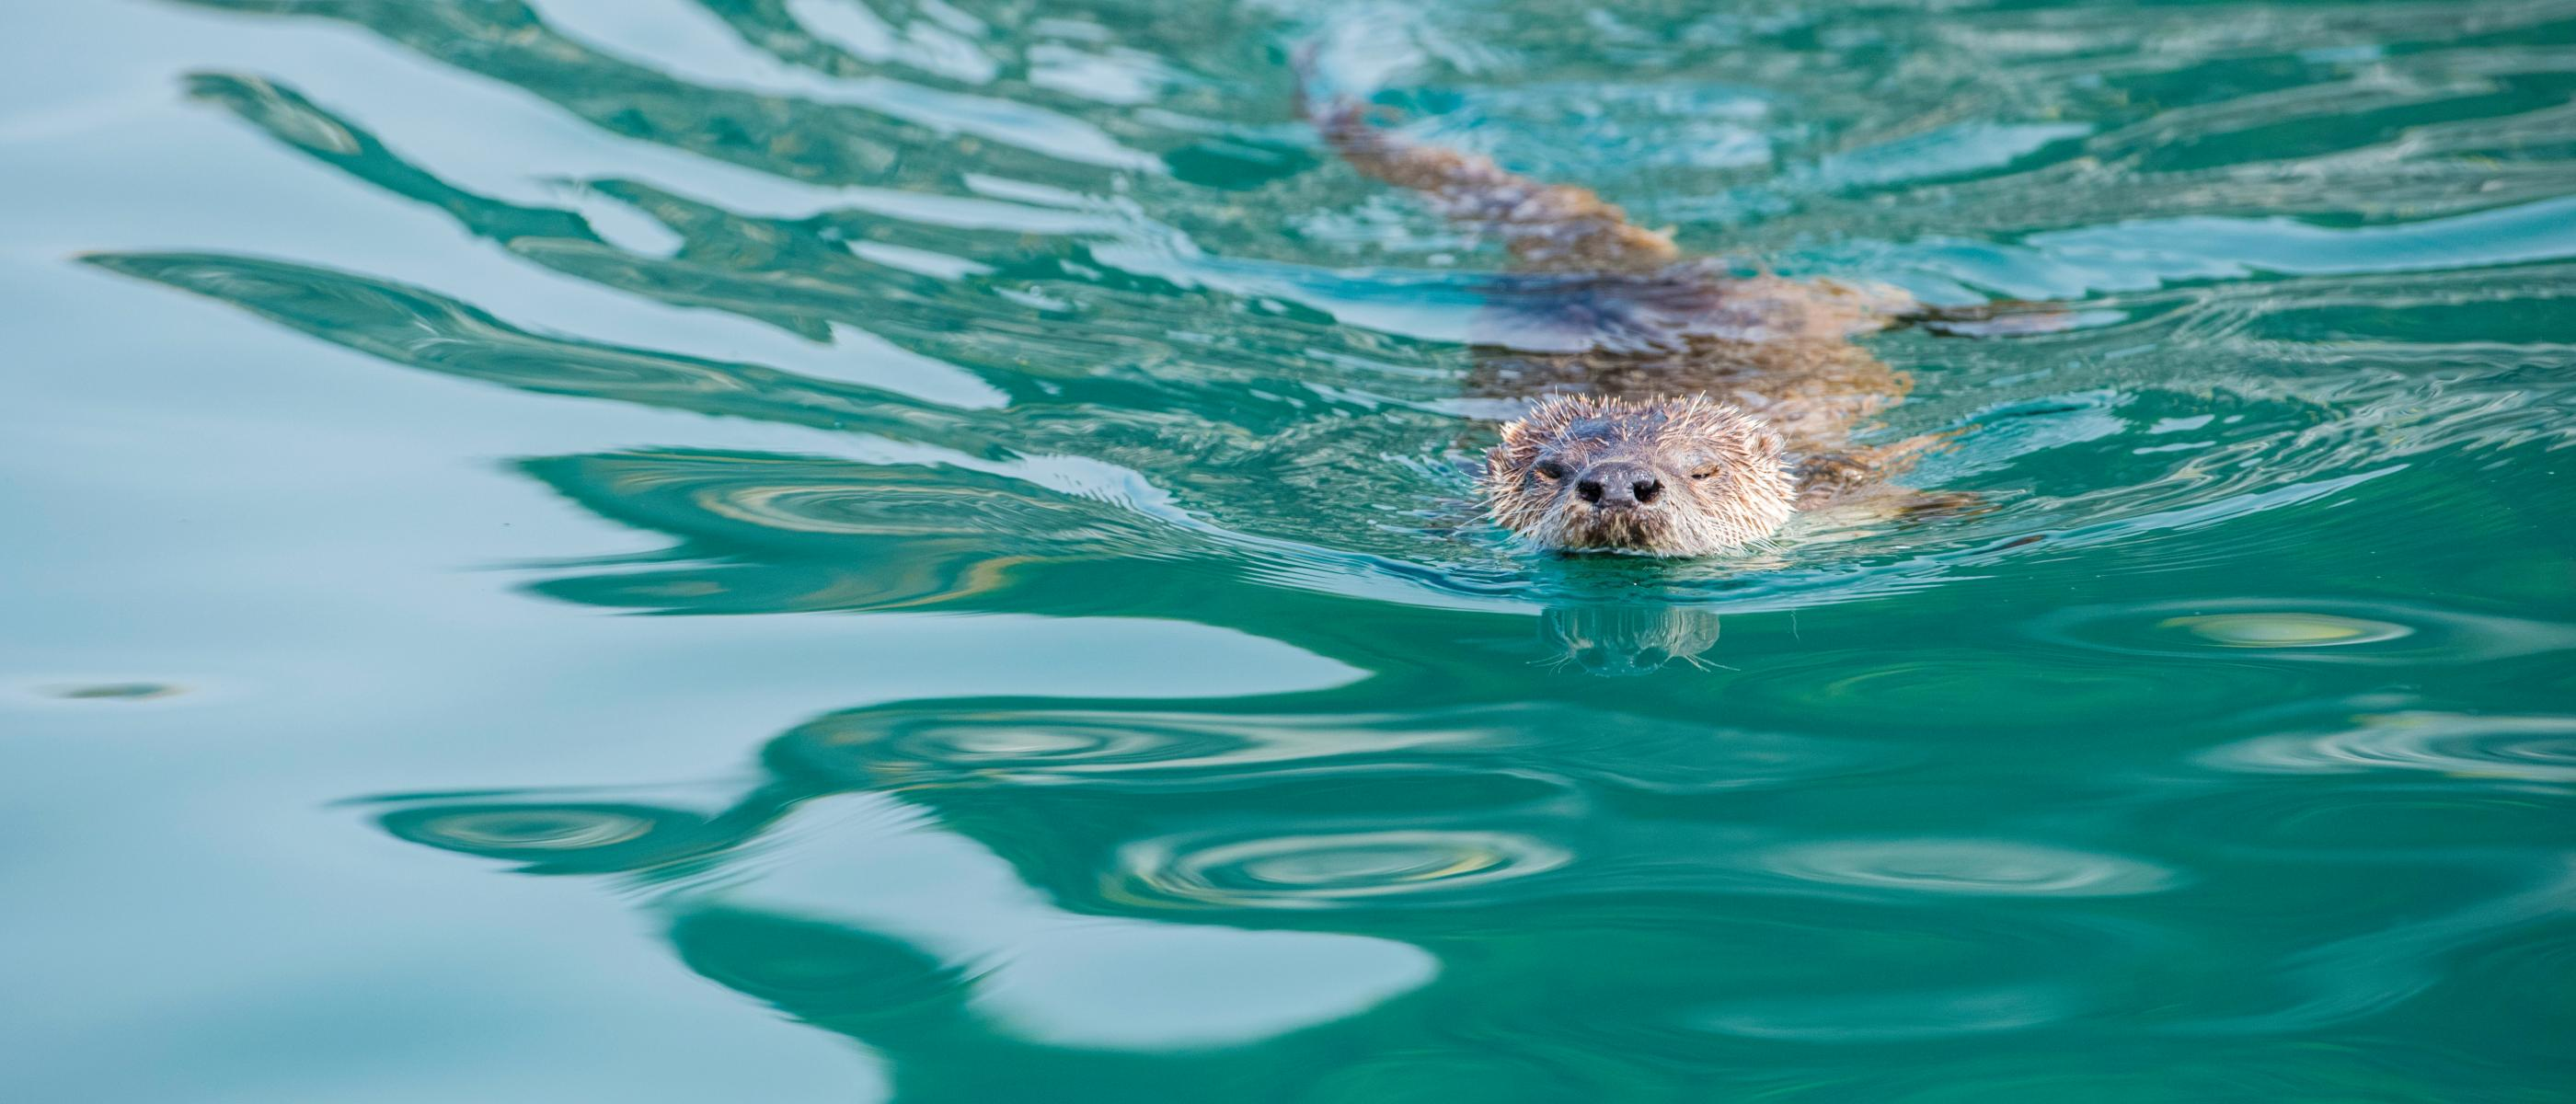 Sea otter swimming in the ocean